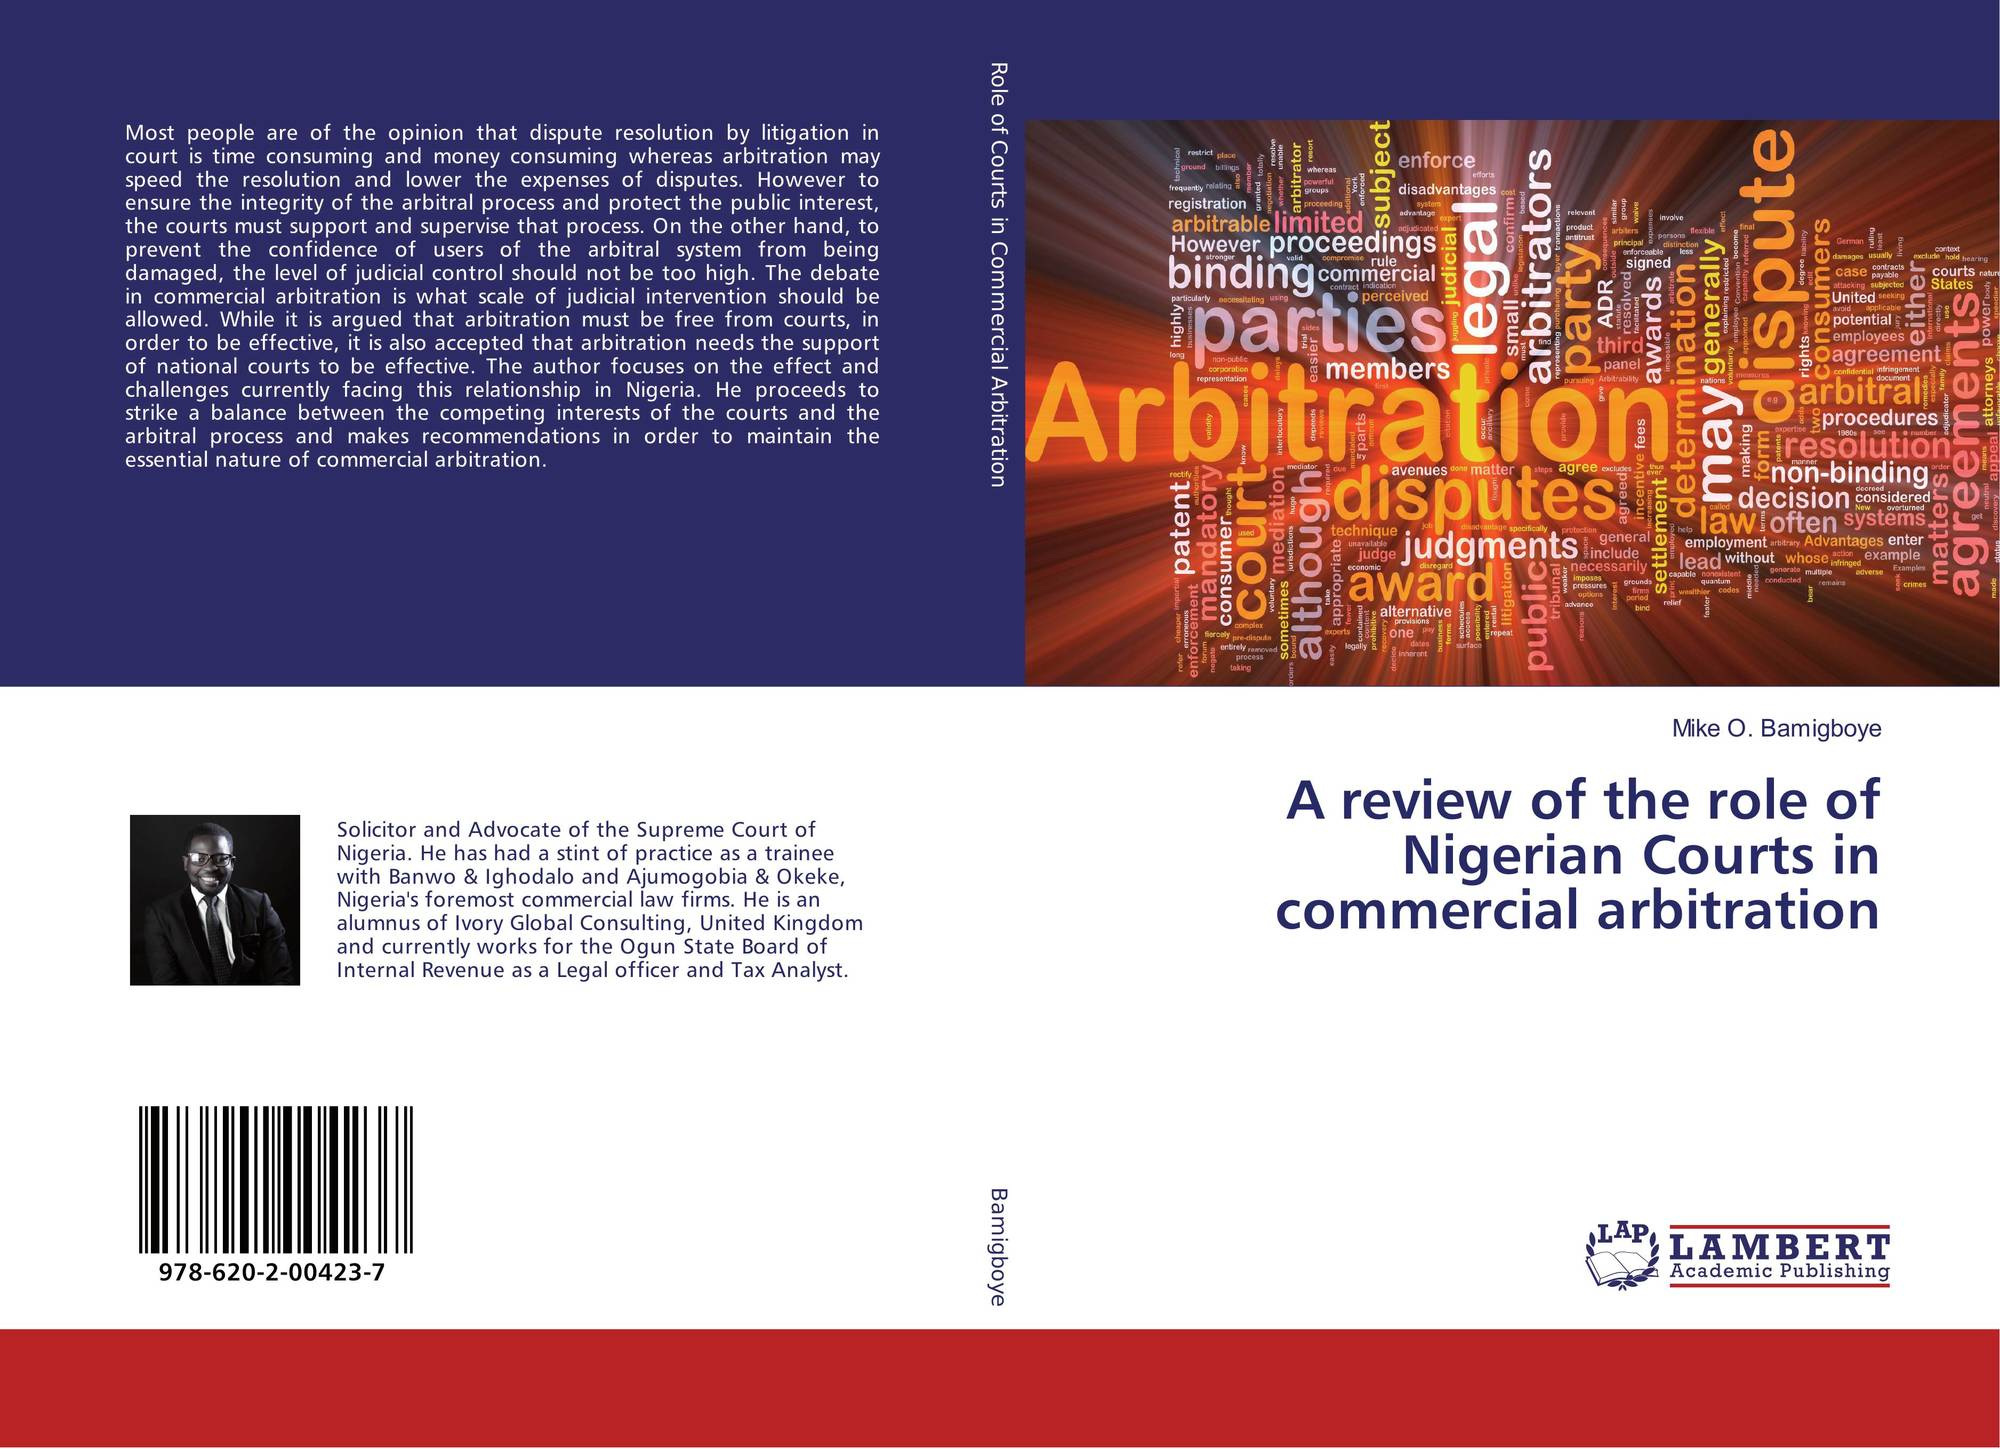 an analysis of the role of law in business and society Chapter 3: the role and functions of government point for the analysis of the role and functions of provides for law and order in society.